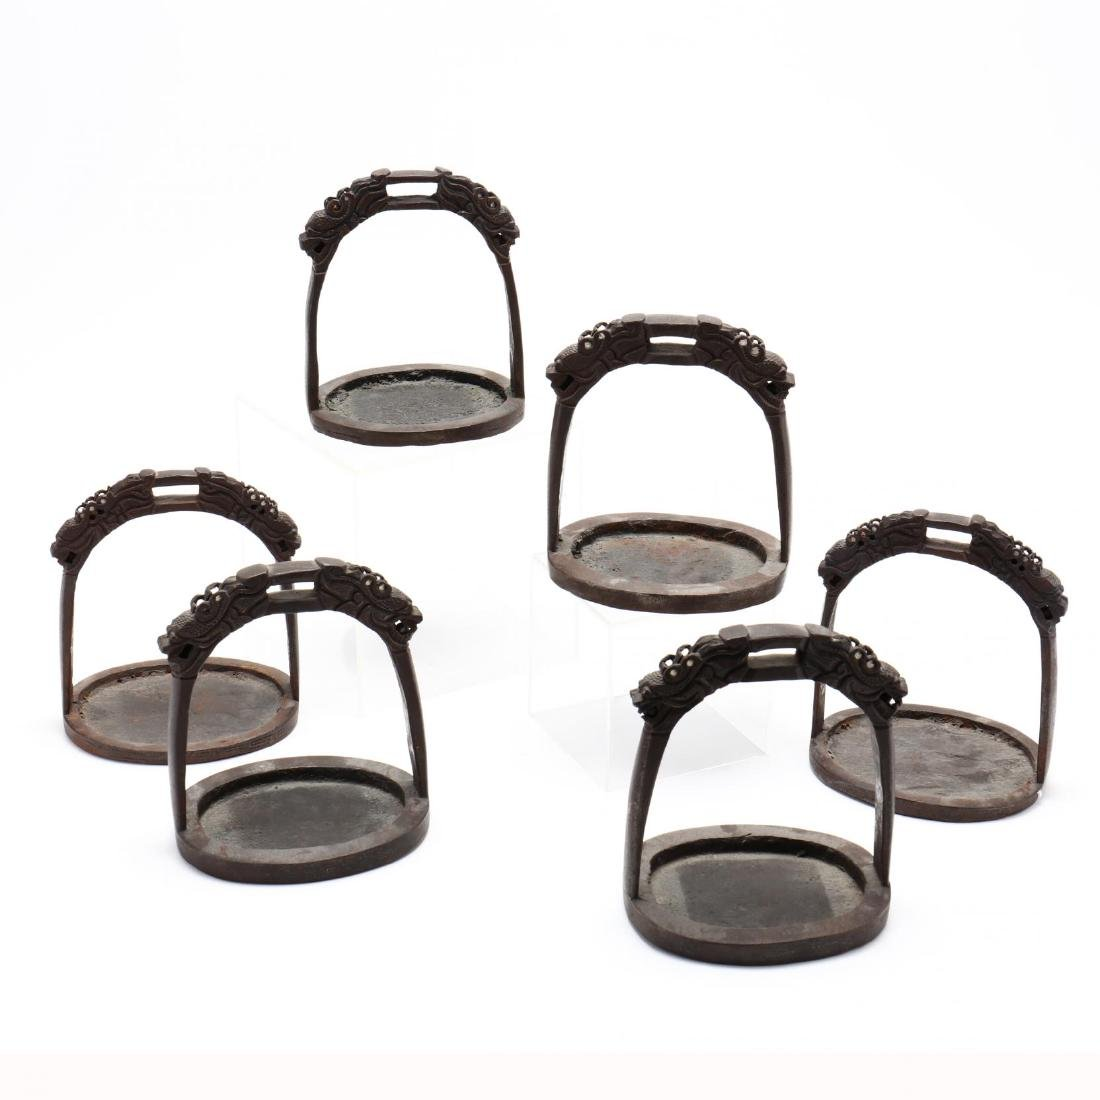 Six Antique Chinese Inlaid Iron Stirrups